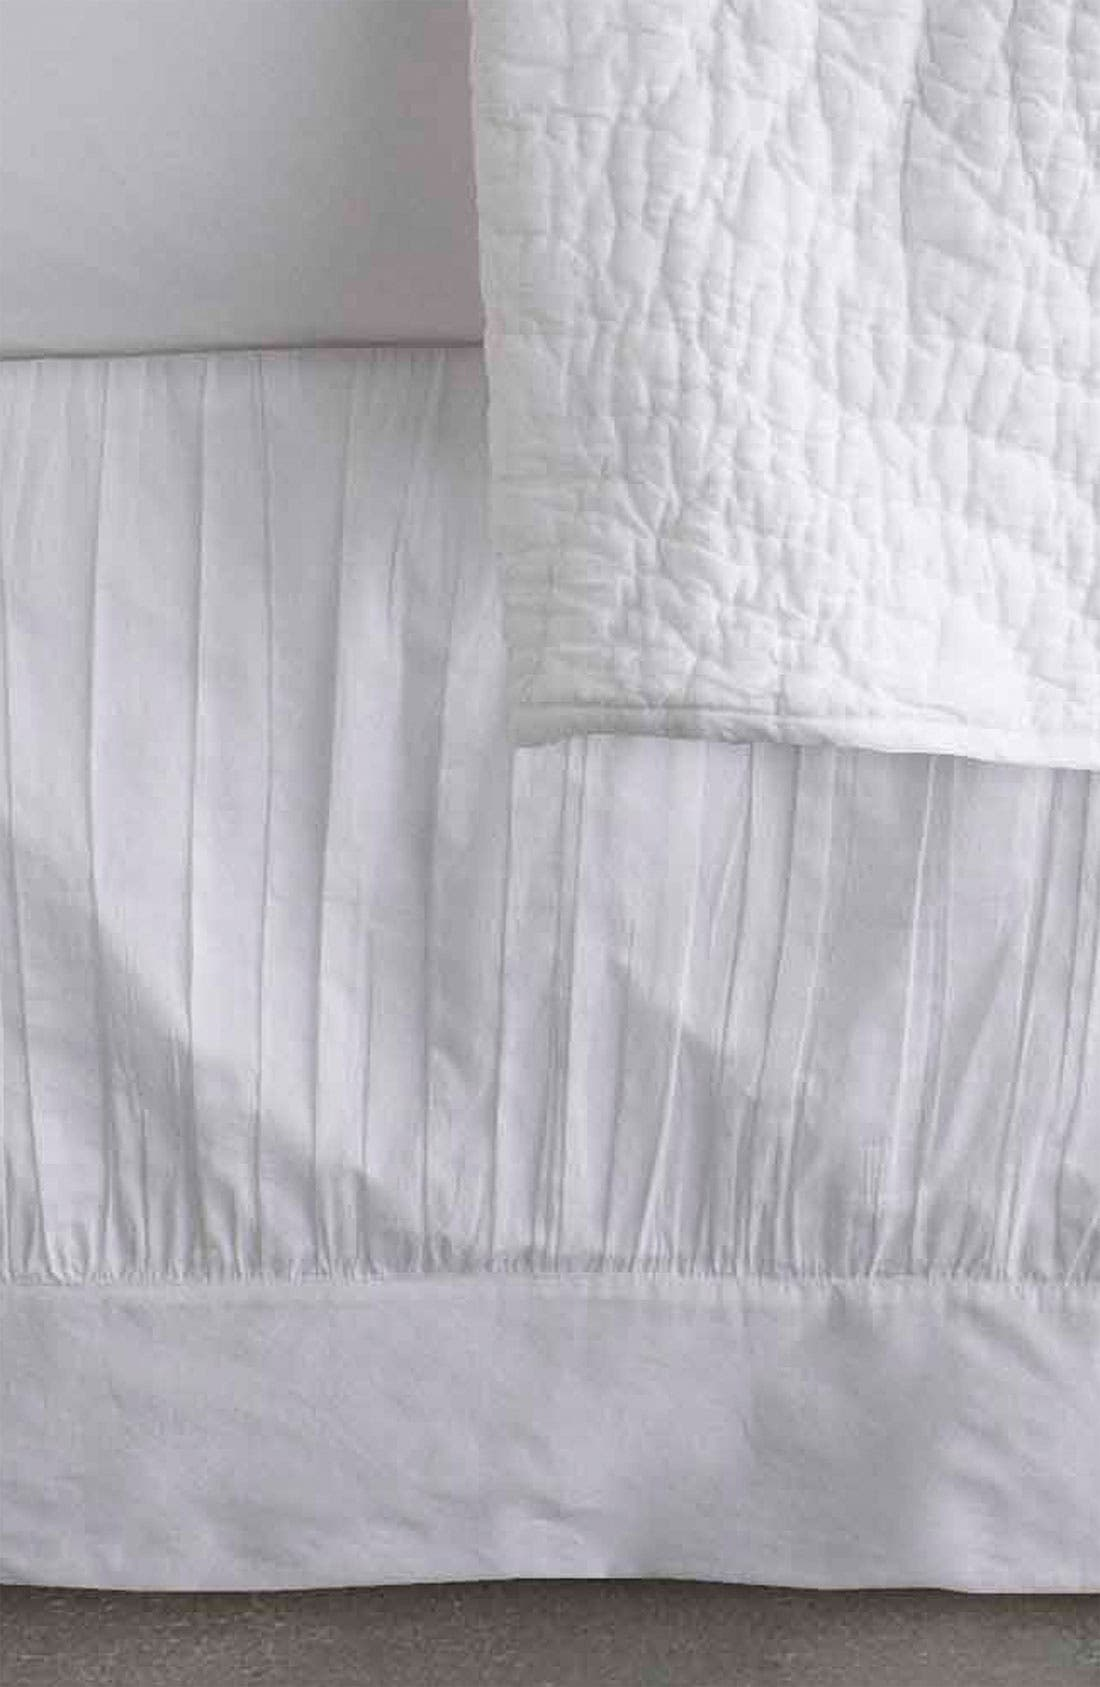 Alternate Image 1 Selected - DKNY 'Pure Innocence' Bed Skirt